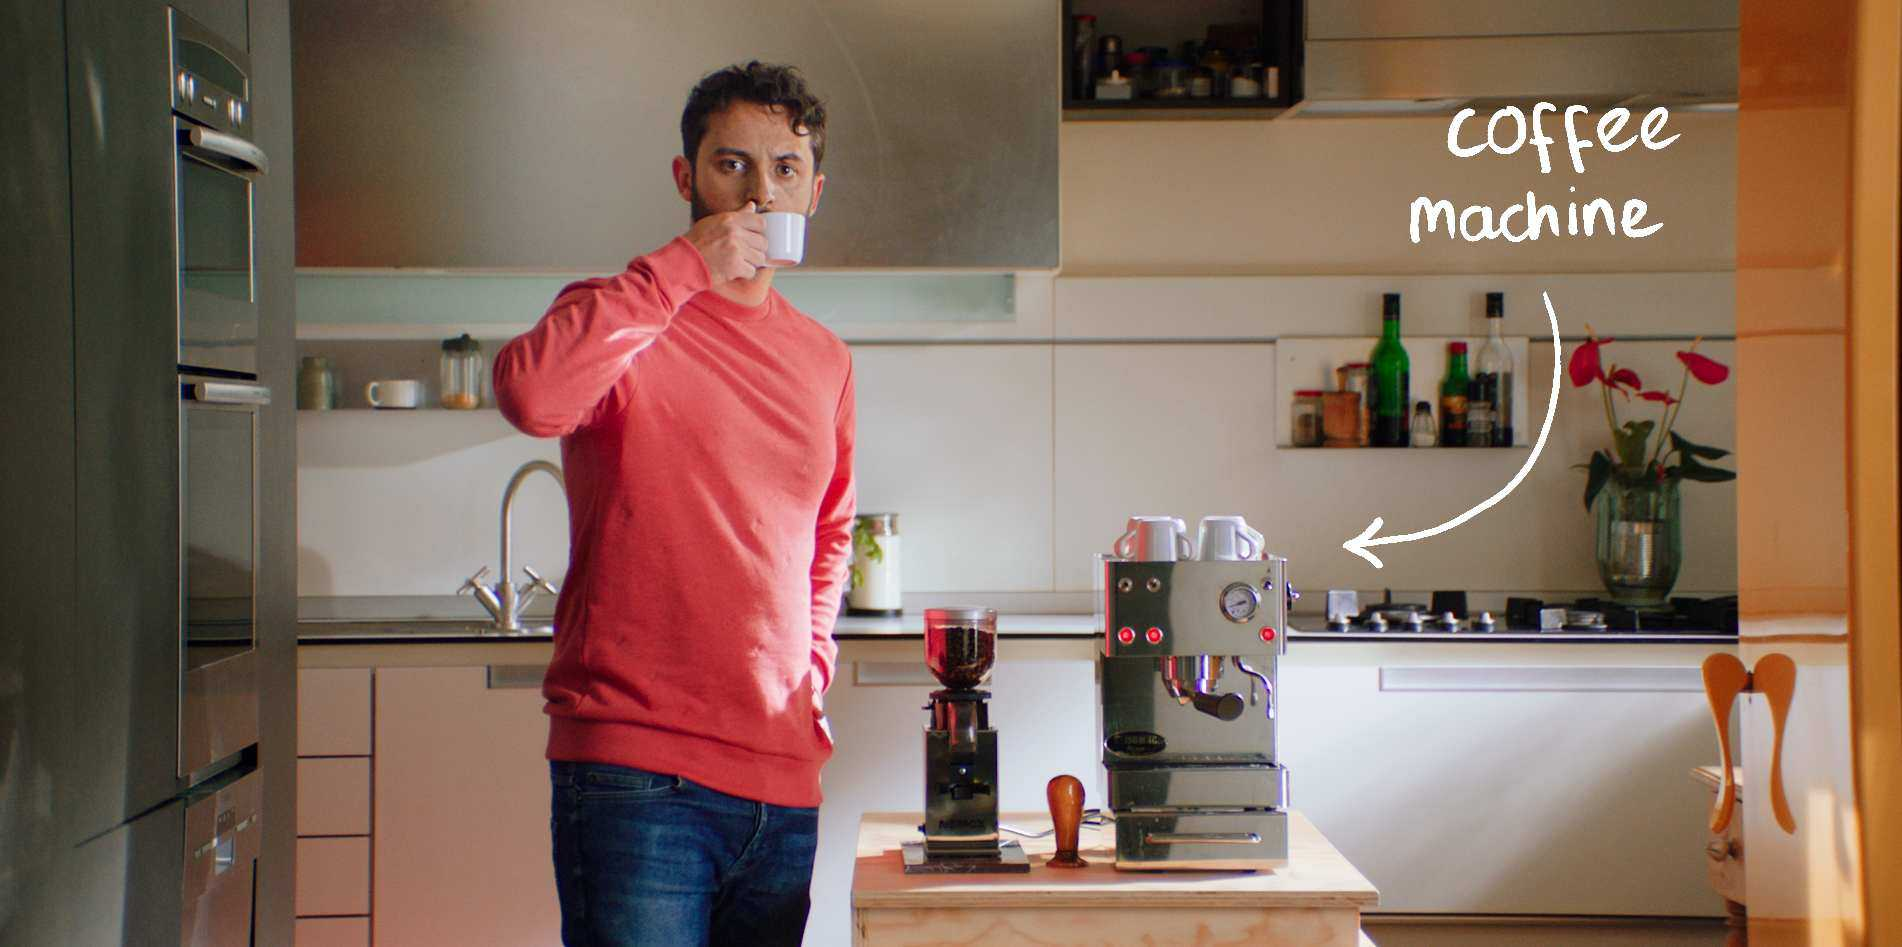 Male-Renter-Drinking-Coffee-from-His-Coffee-Machine